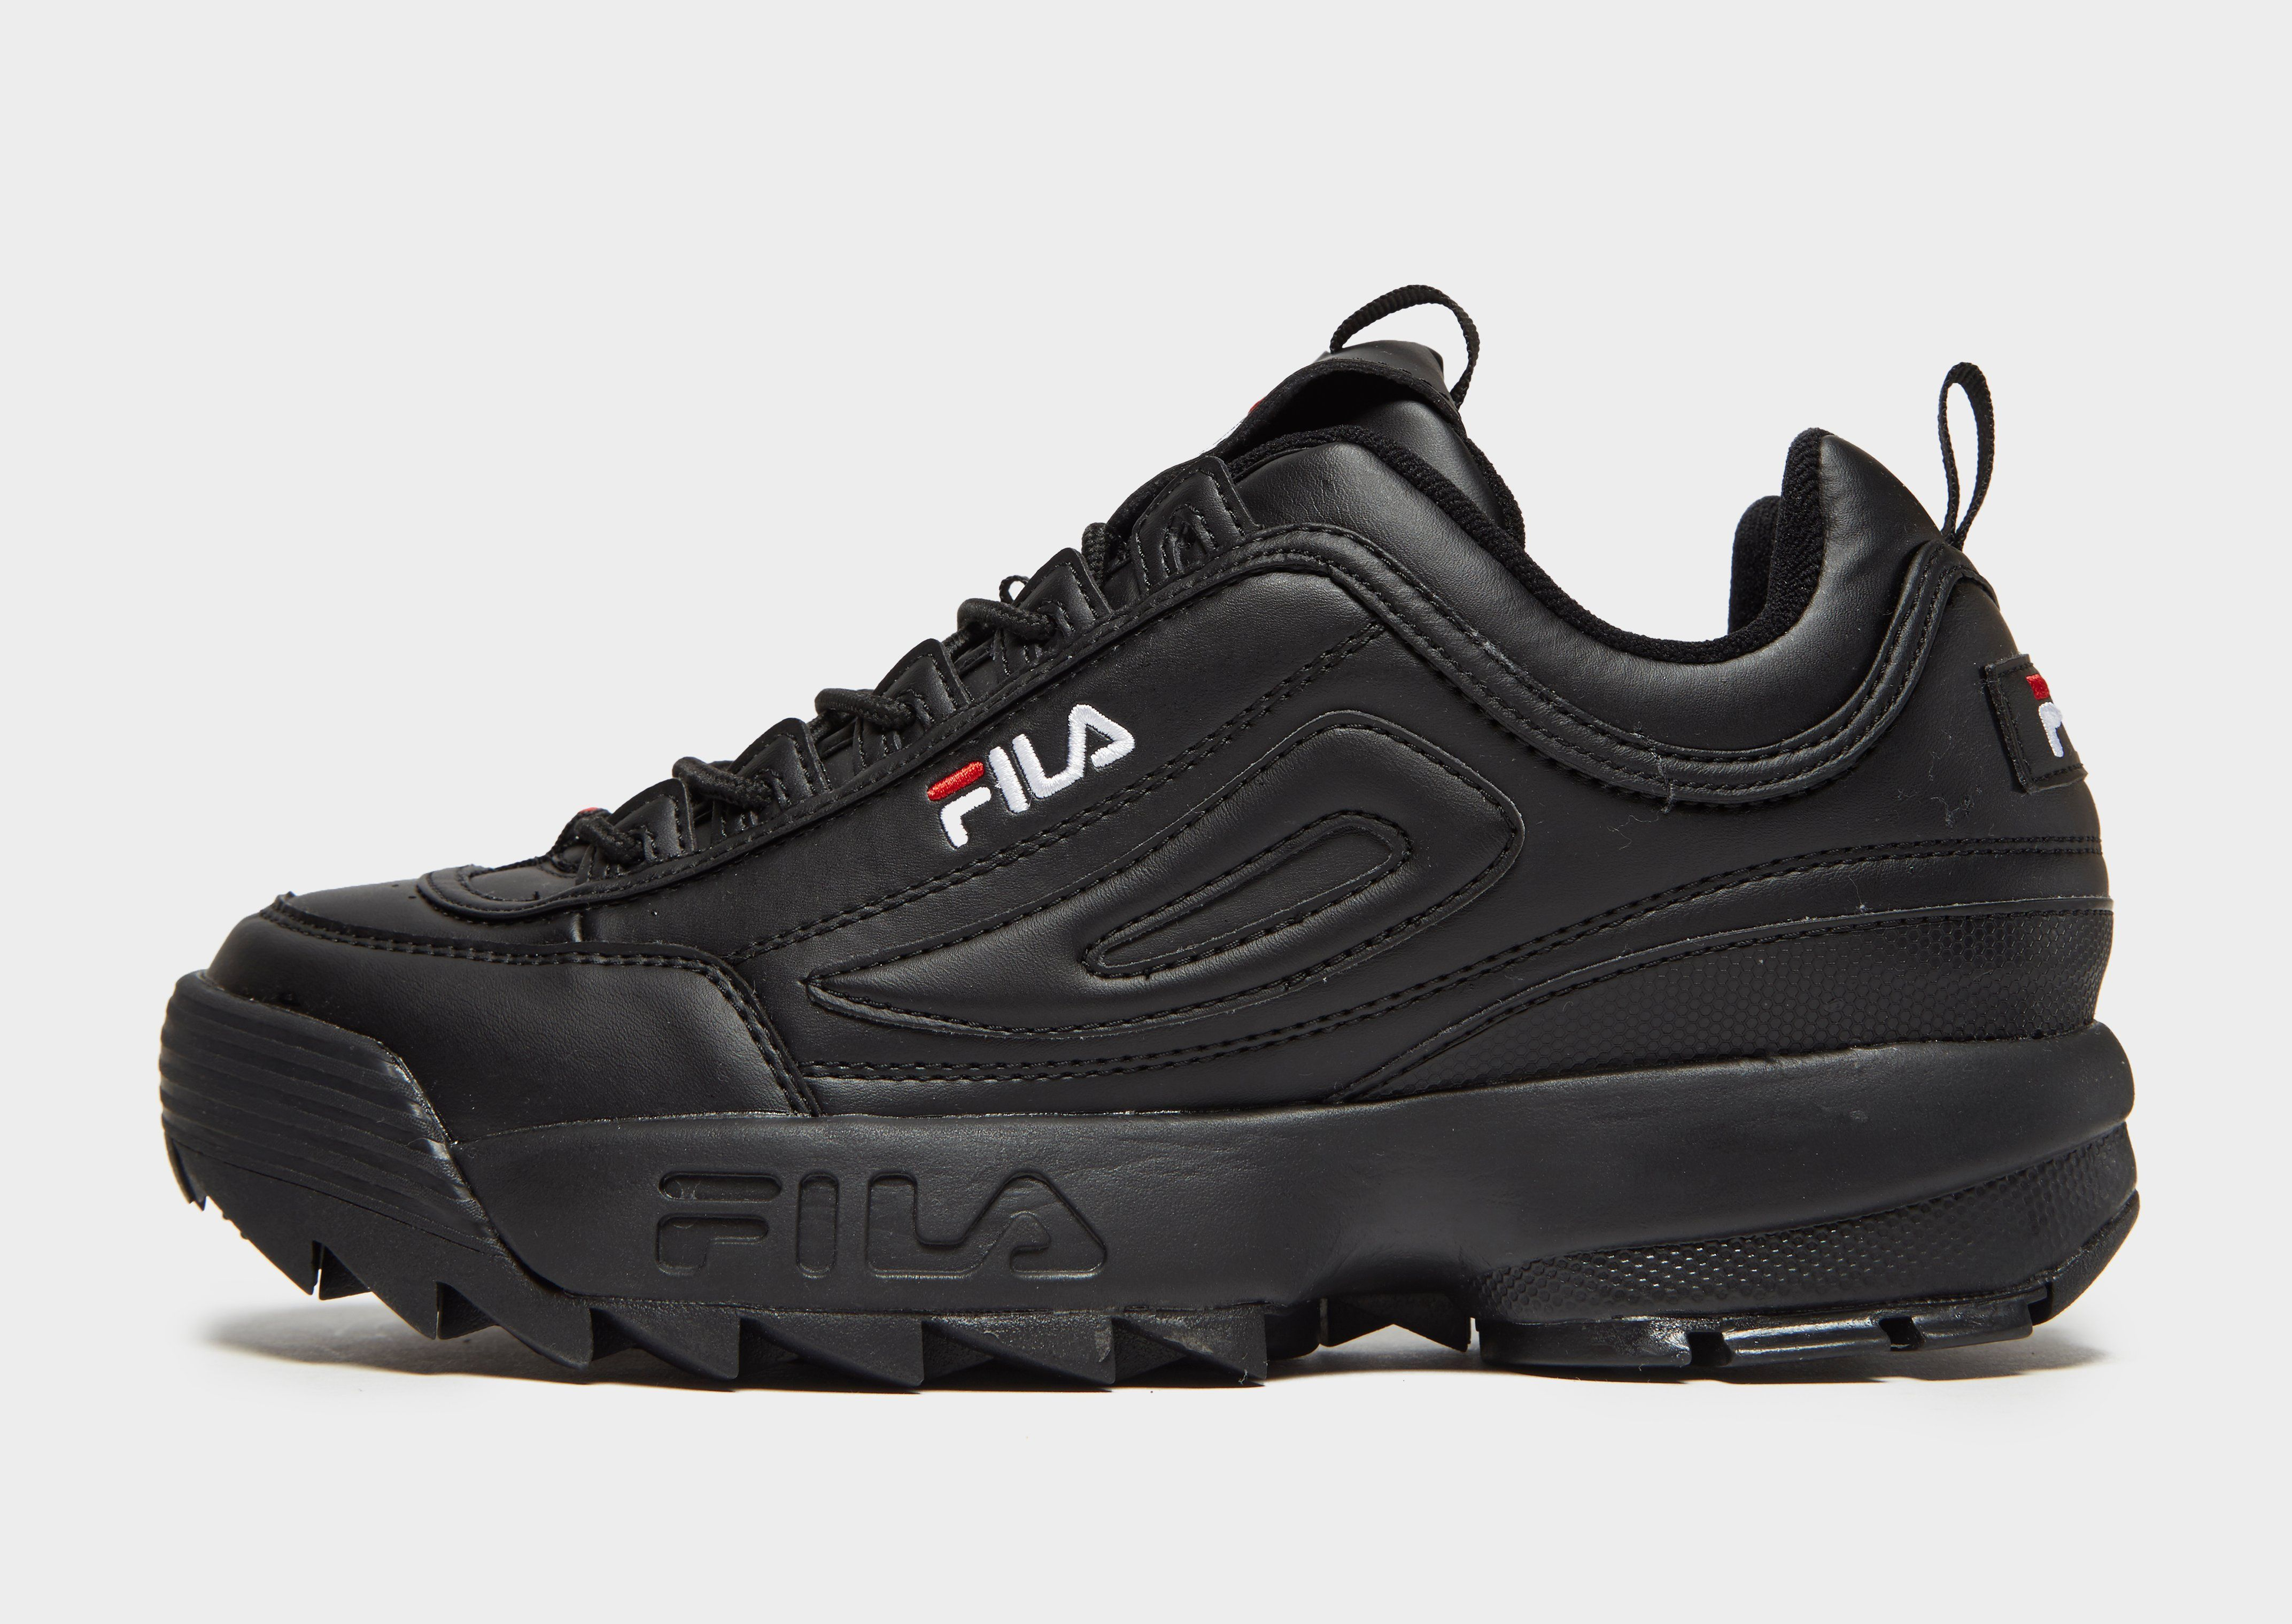 fila jd sold chaussures